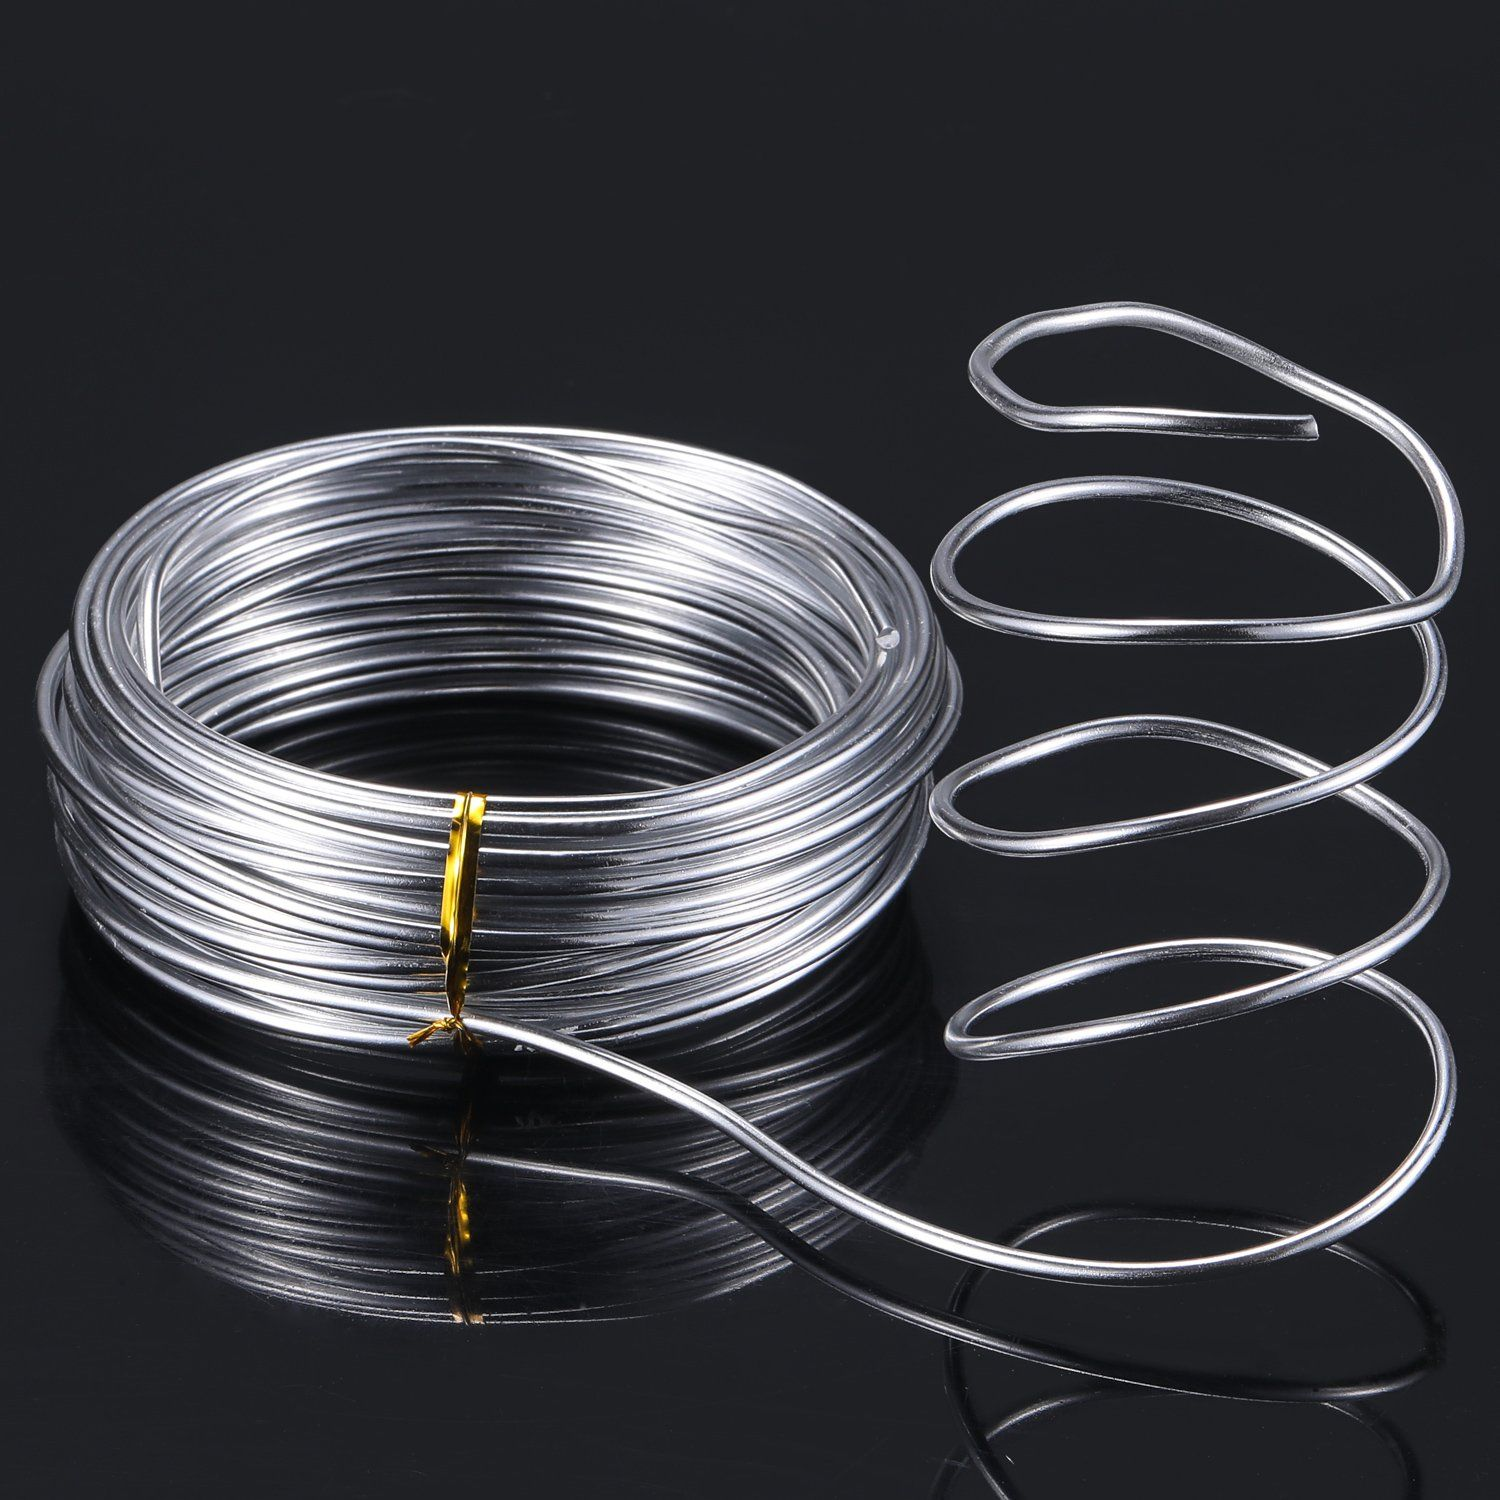 32 8 Feet Copper Aluminum Wire Bendable Metal Craft Wire For Making Dolls Skeleton Diy Crafts Silver 3 Mm Thickness Metal Crafts Aluminum Jewelry Bendable